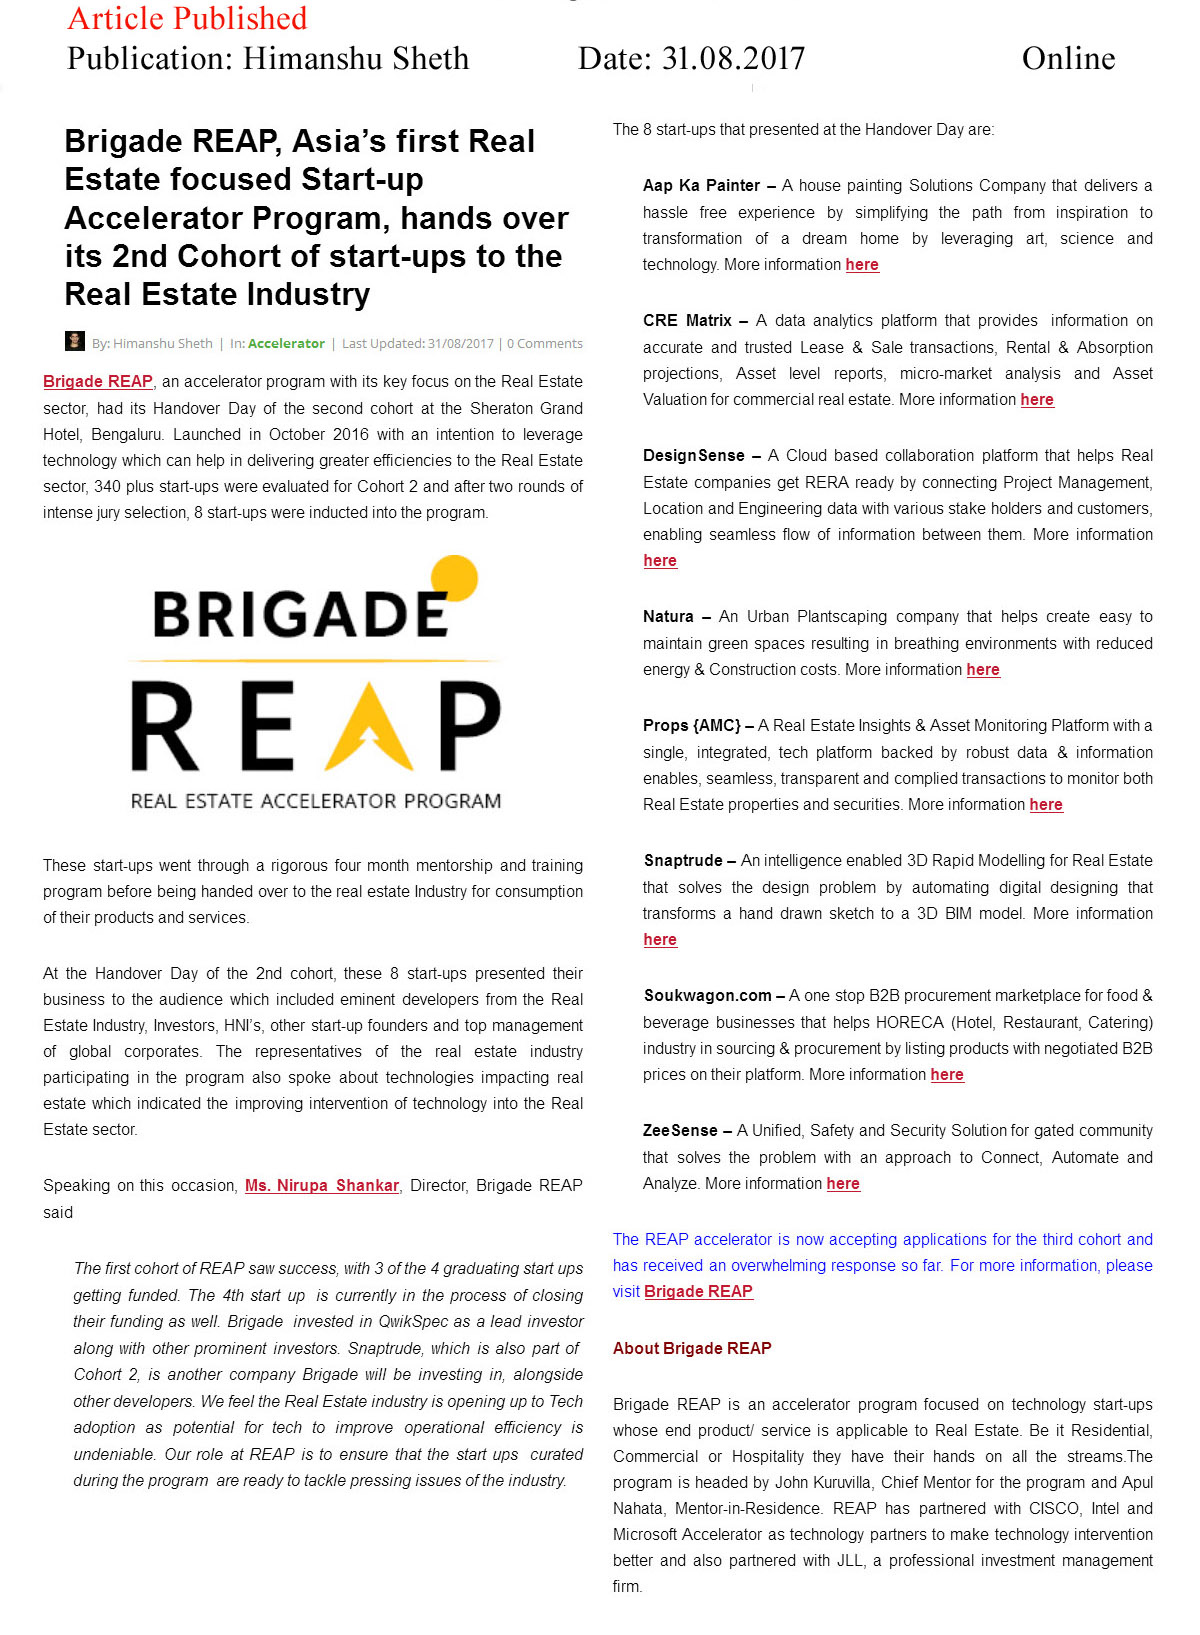 Brigade REAP, Asia's first Real Estate focused Start-up Accelerator Program, hands over its 2nd Cohort of start-ups to the Real Estate Industry—Himanshu Sheth–Online